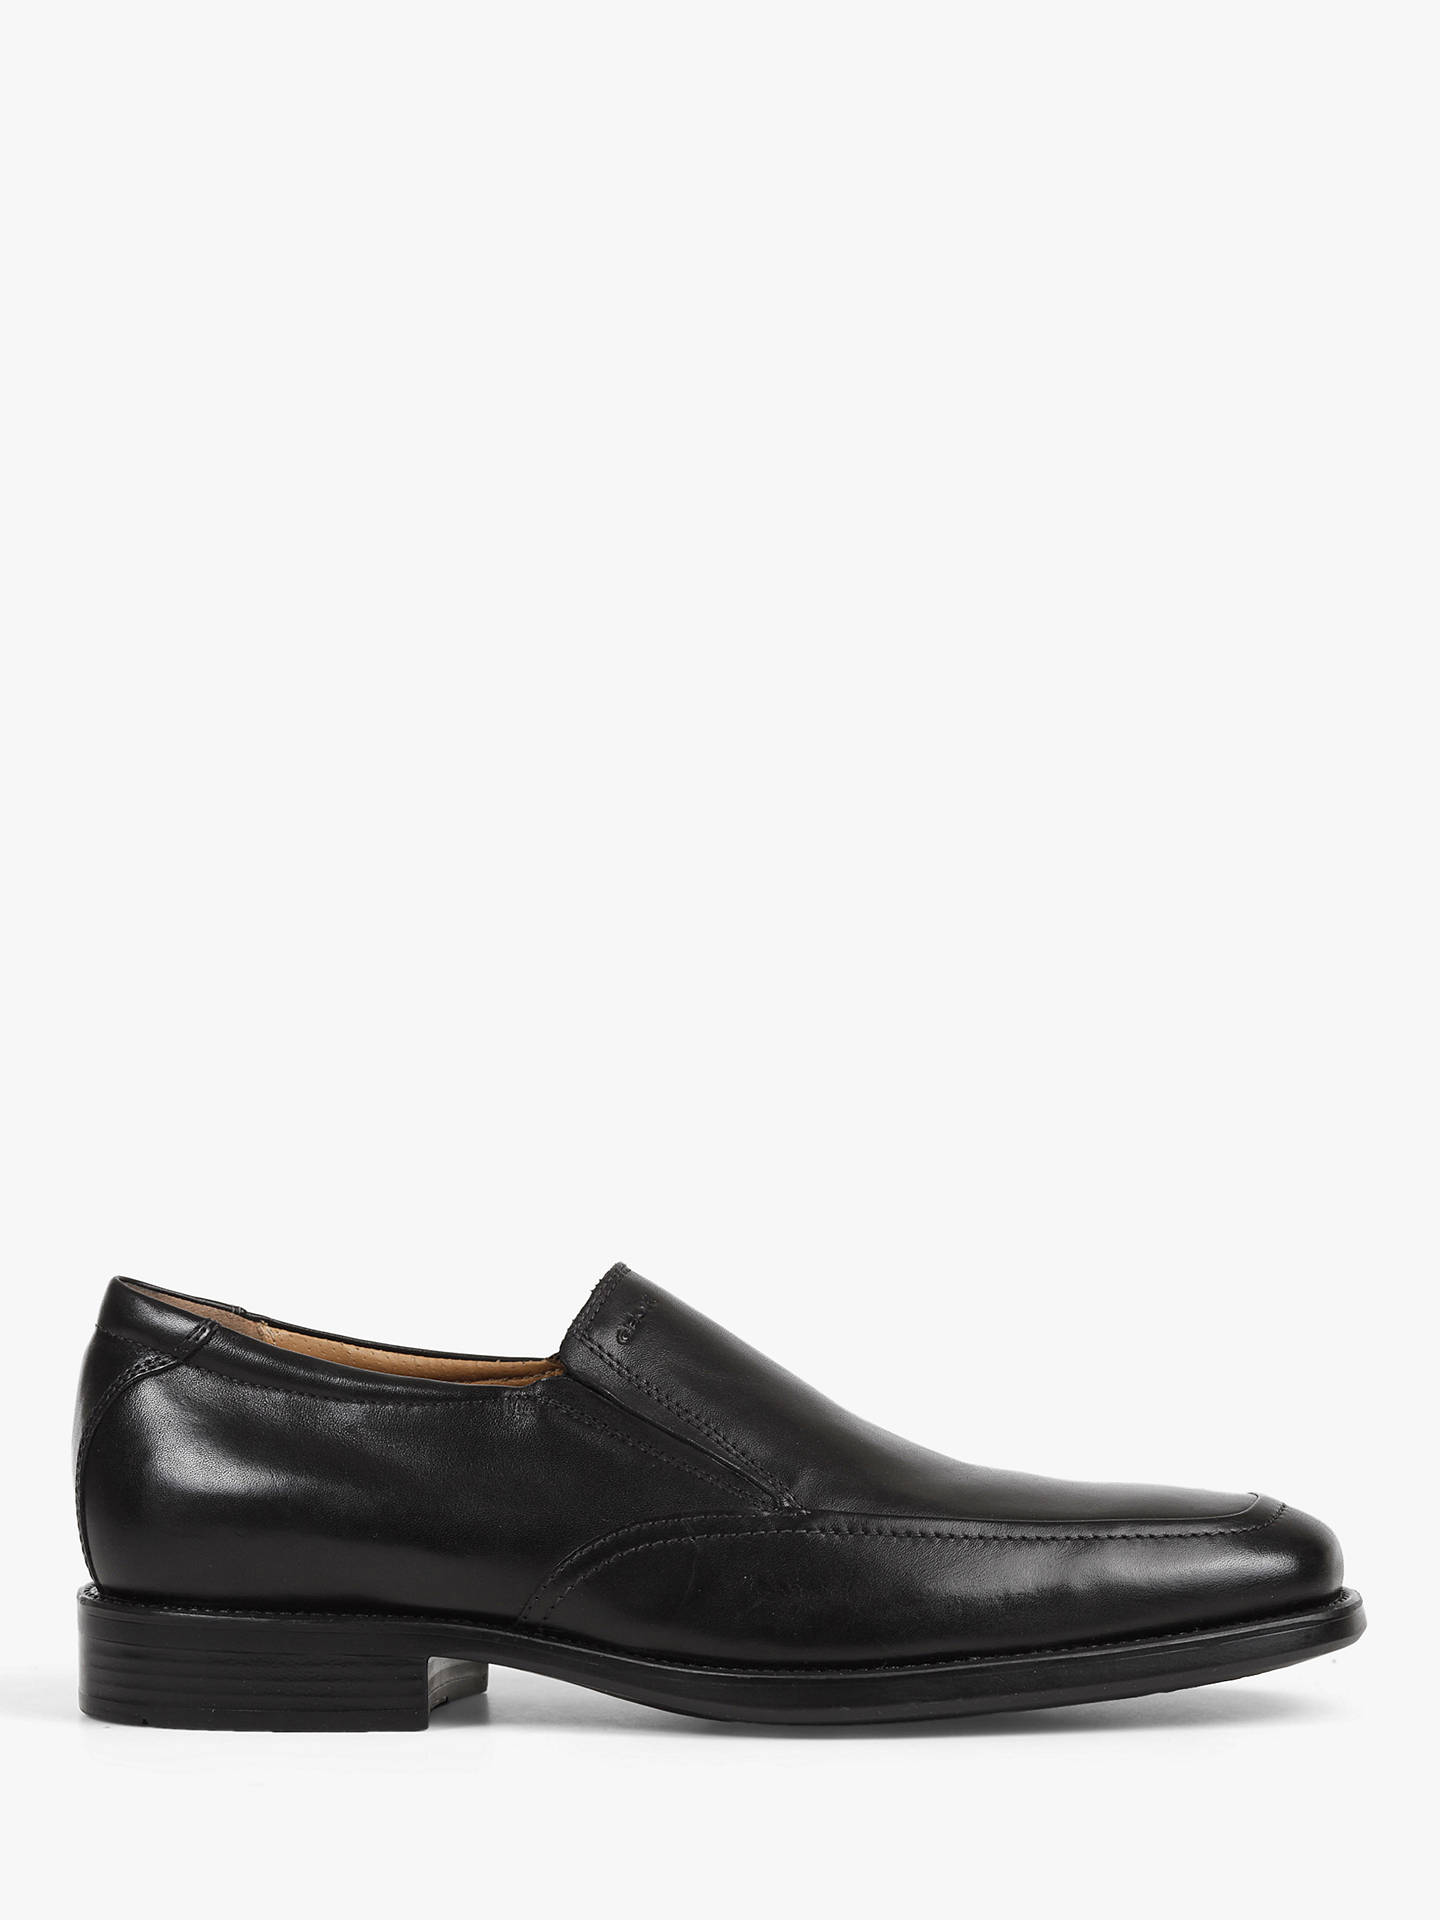 BuyGeox Federico Apron Slip-On Shoes, Black, 7 Online at johnlewis.com